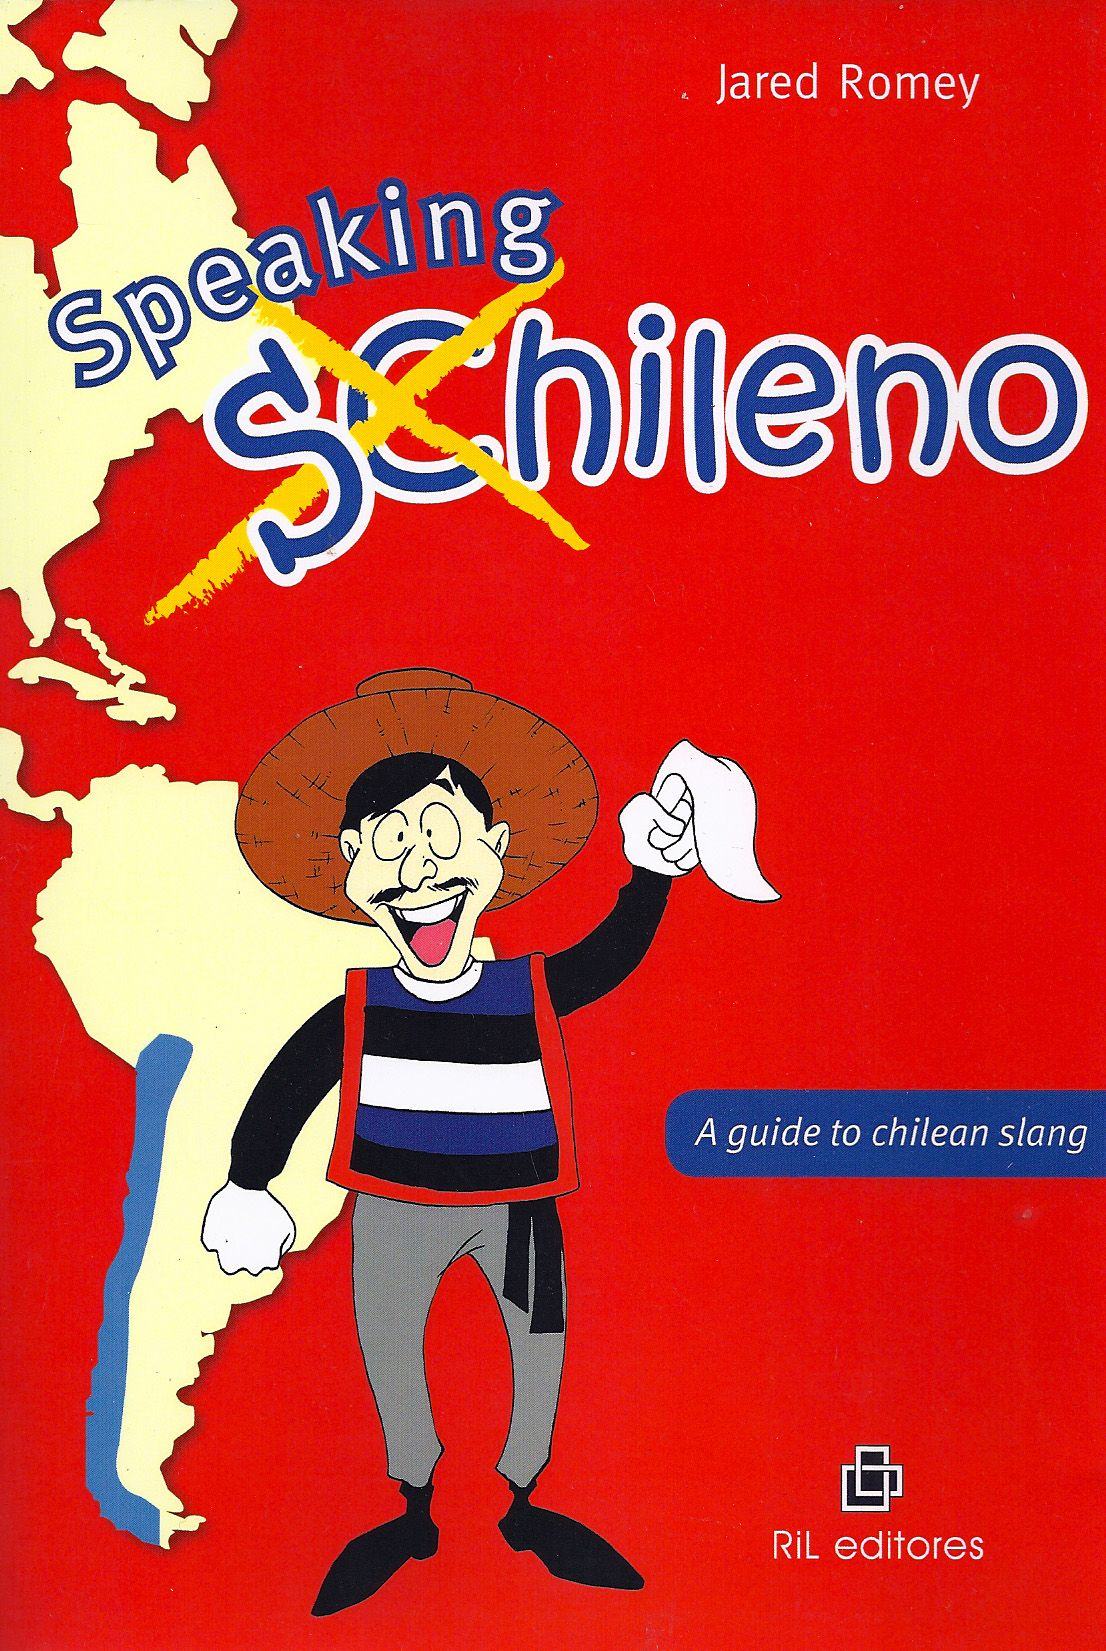 Product speaking chileno book spanish and spanish pronunciation speaking chileno chilean market chile spanish slang chilenismos kristyandbryce Images